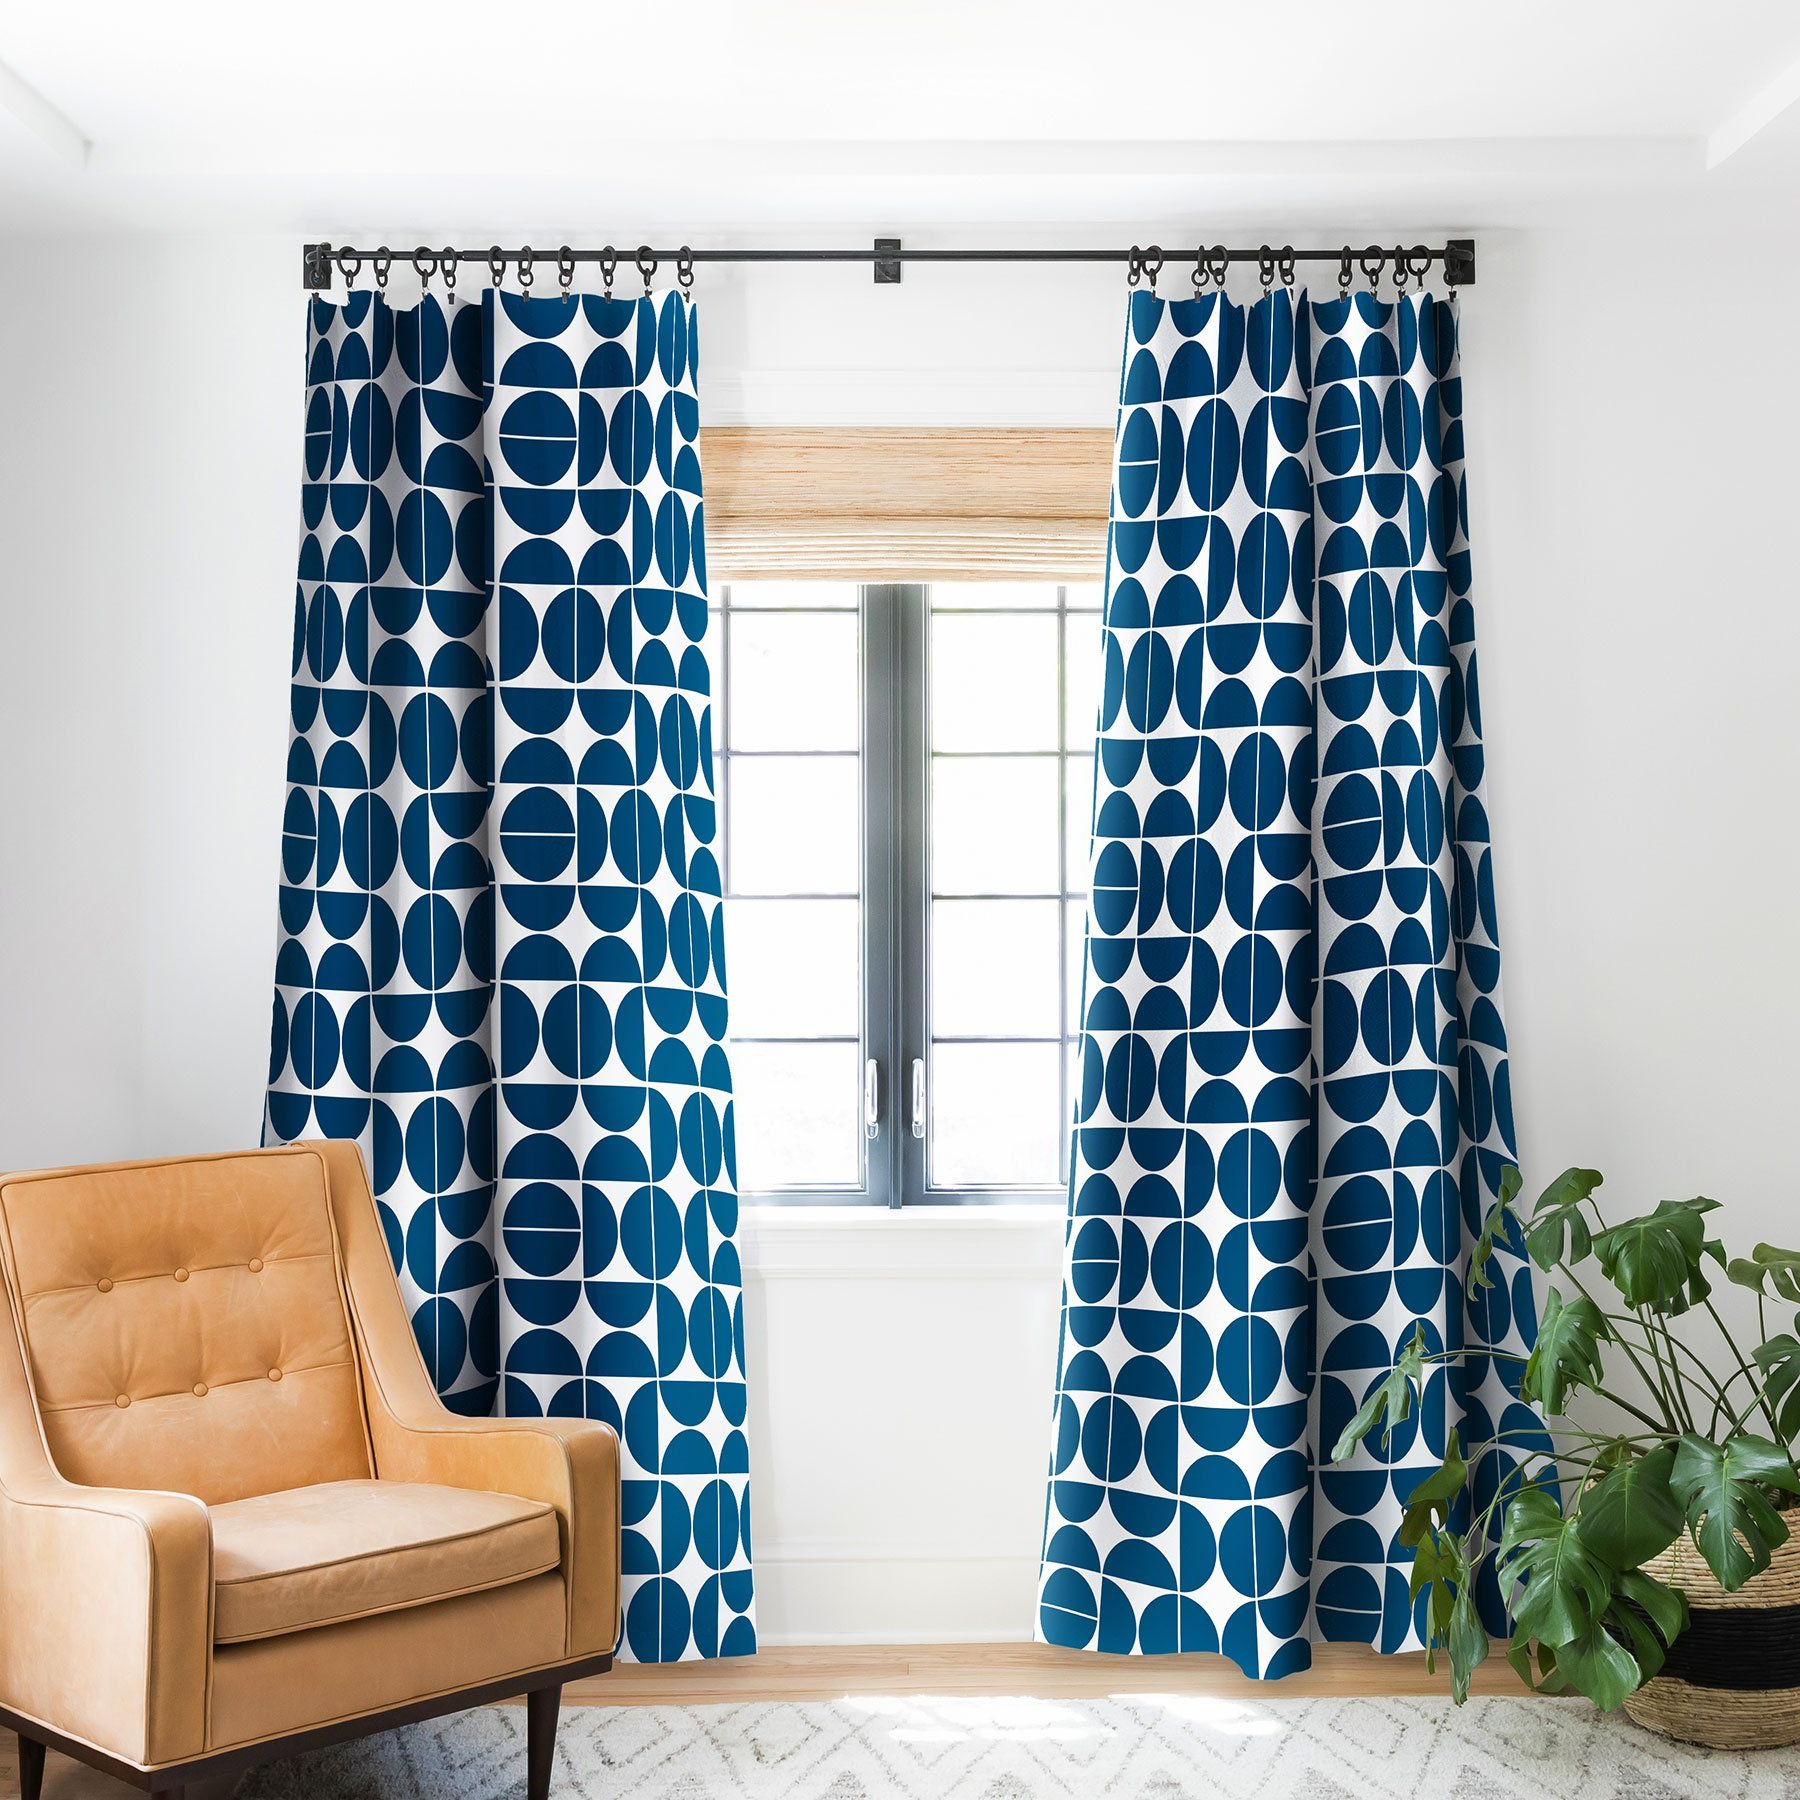 Famous Mid Century Modern 04 Blue Blackout Window Curtain The Old With Regard To Mid Century Geo Room Darkening Window Curtain Panel Pairs (Gallery 7 of 22)